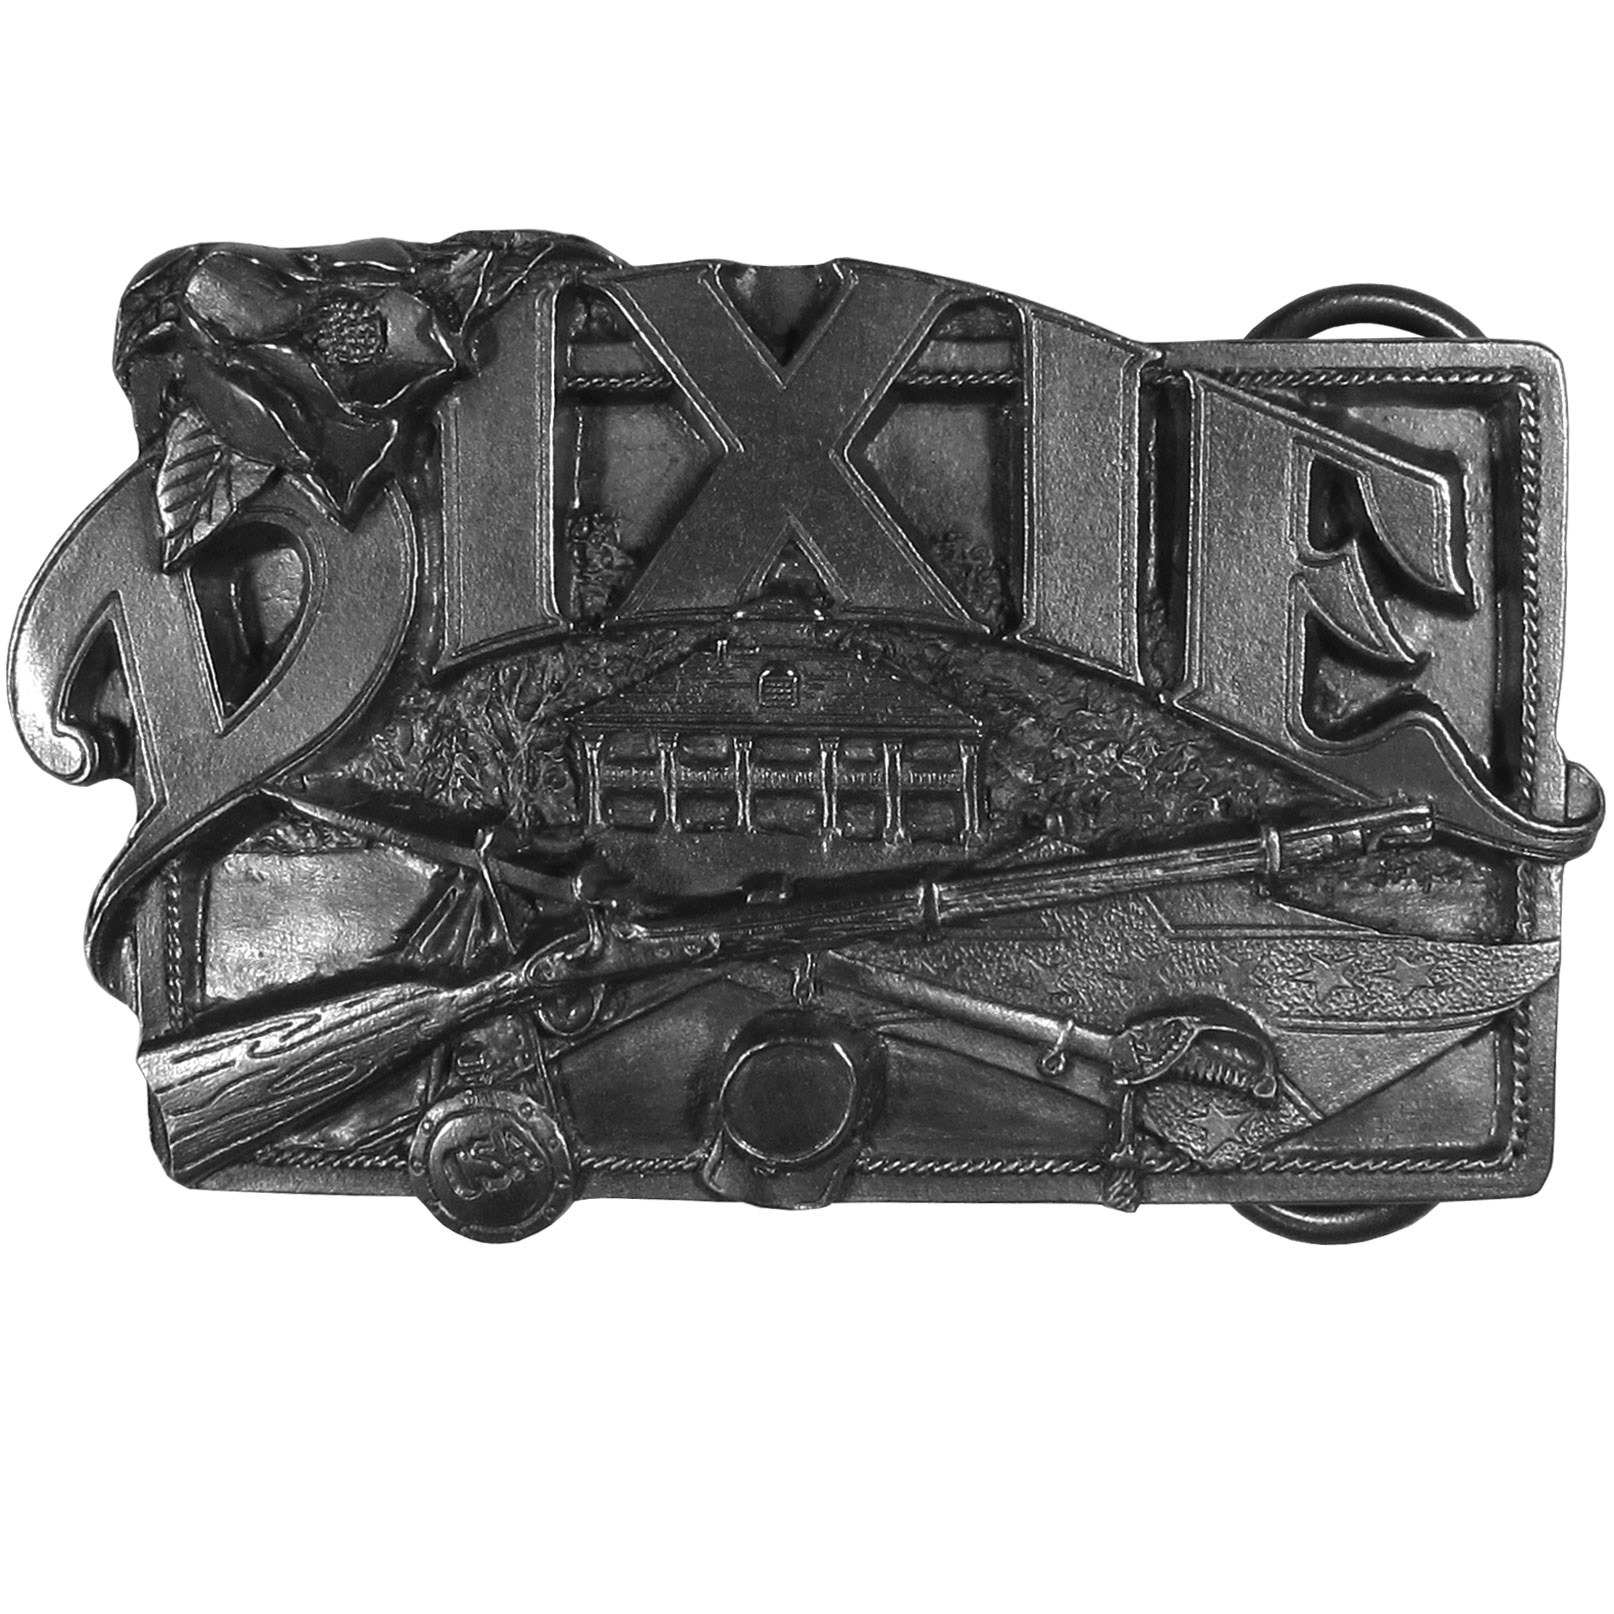 "Dixie Antiqued Belt Buckle - ""This belt buckle celebrates Dixie!  """"Dixie"""" is written in bold on the top with plantation, a rifle, a sword, a water bottle, a hat and a Confederate flag.  On the back are the words, """"Dixie...is a place, a people and a heritage that lives on today in the great Southland of the United States of America - Look Away to Dixieland."""""""